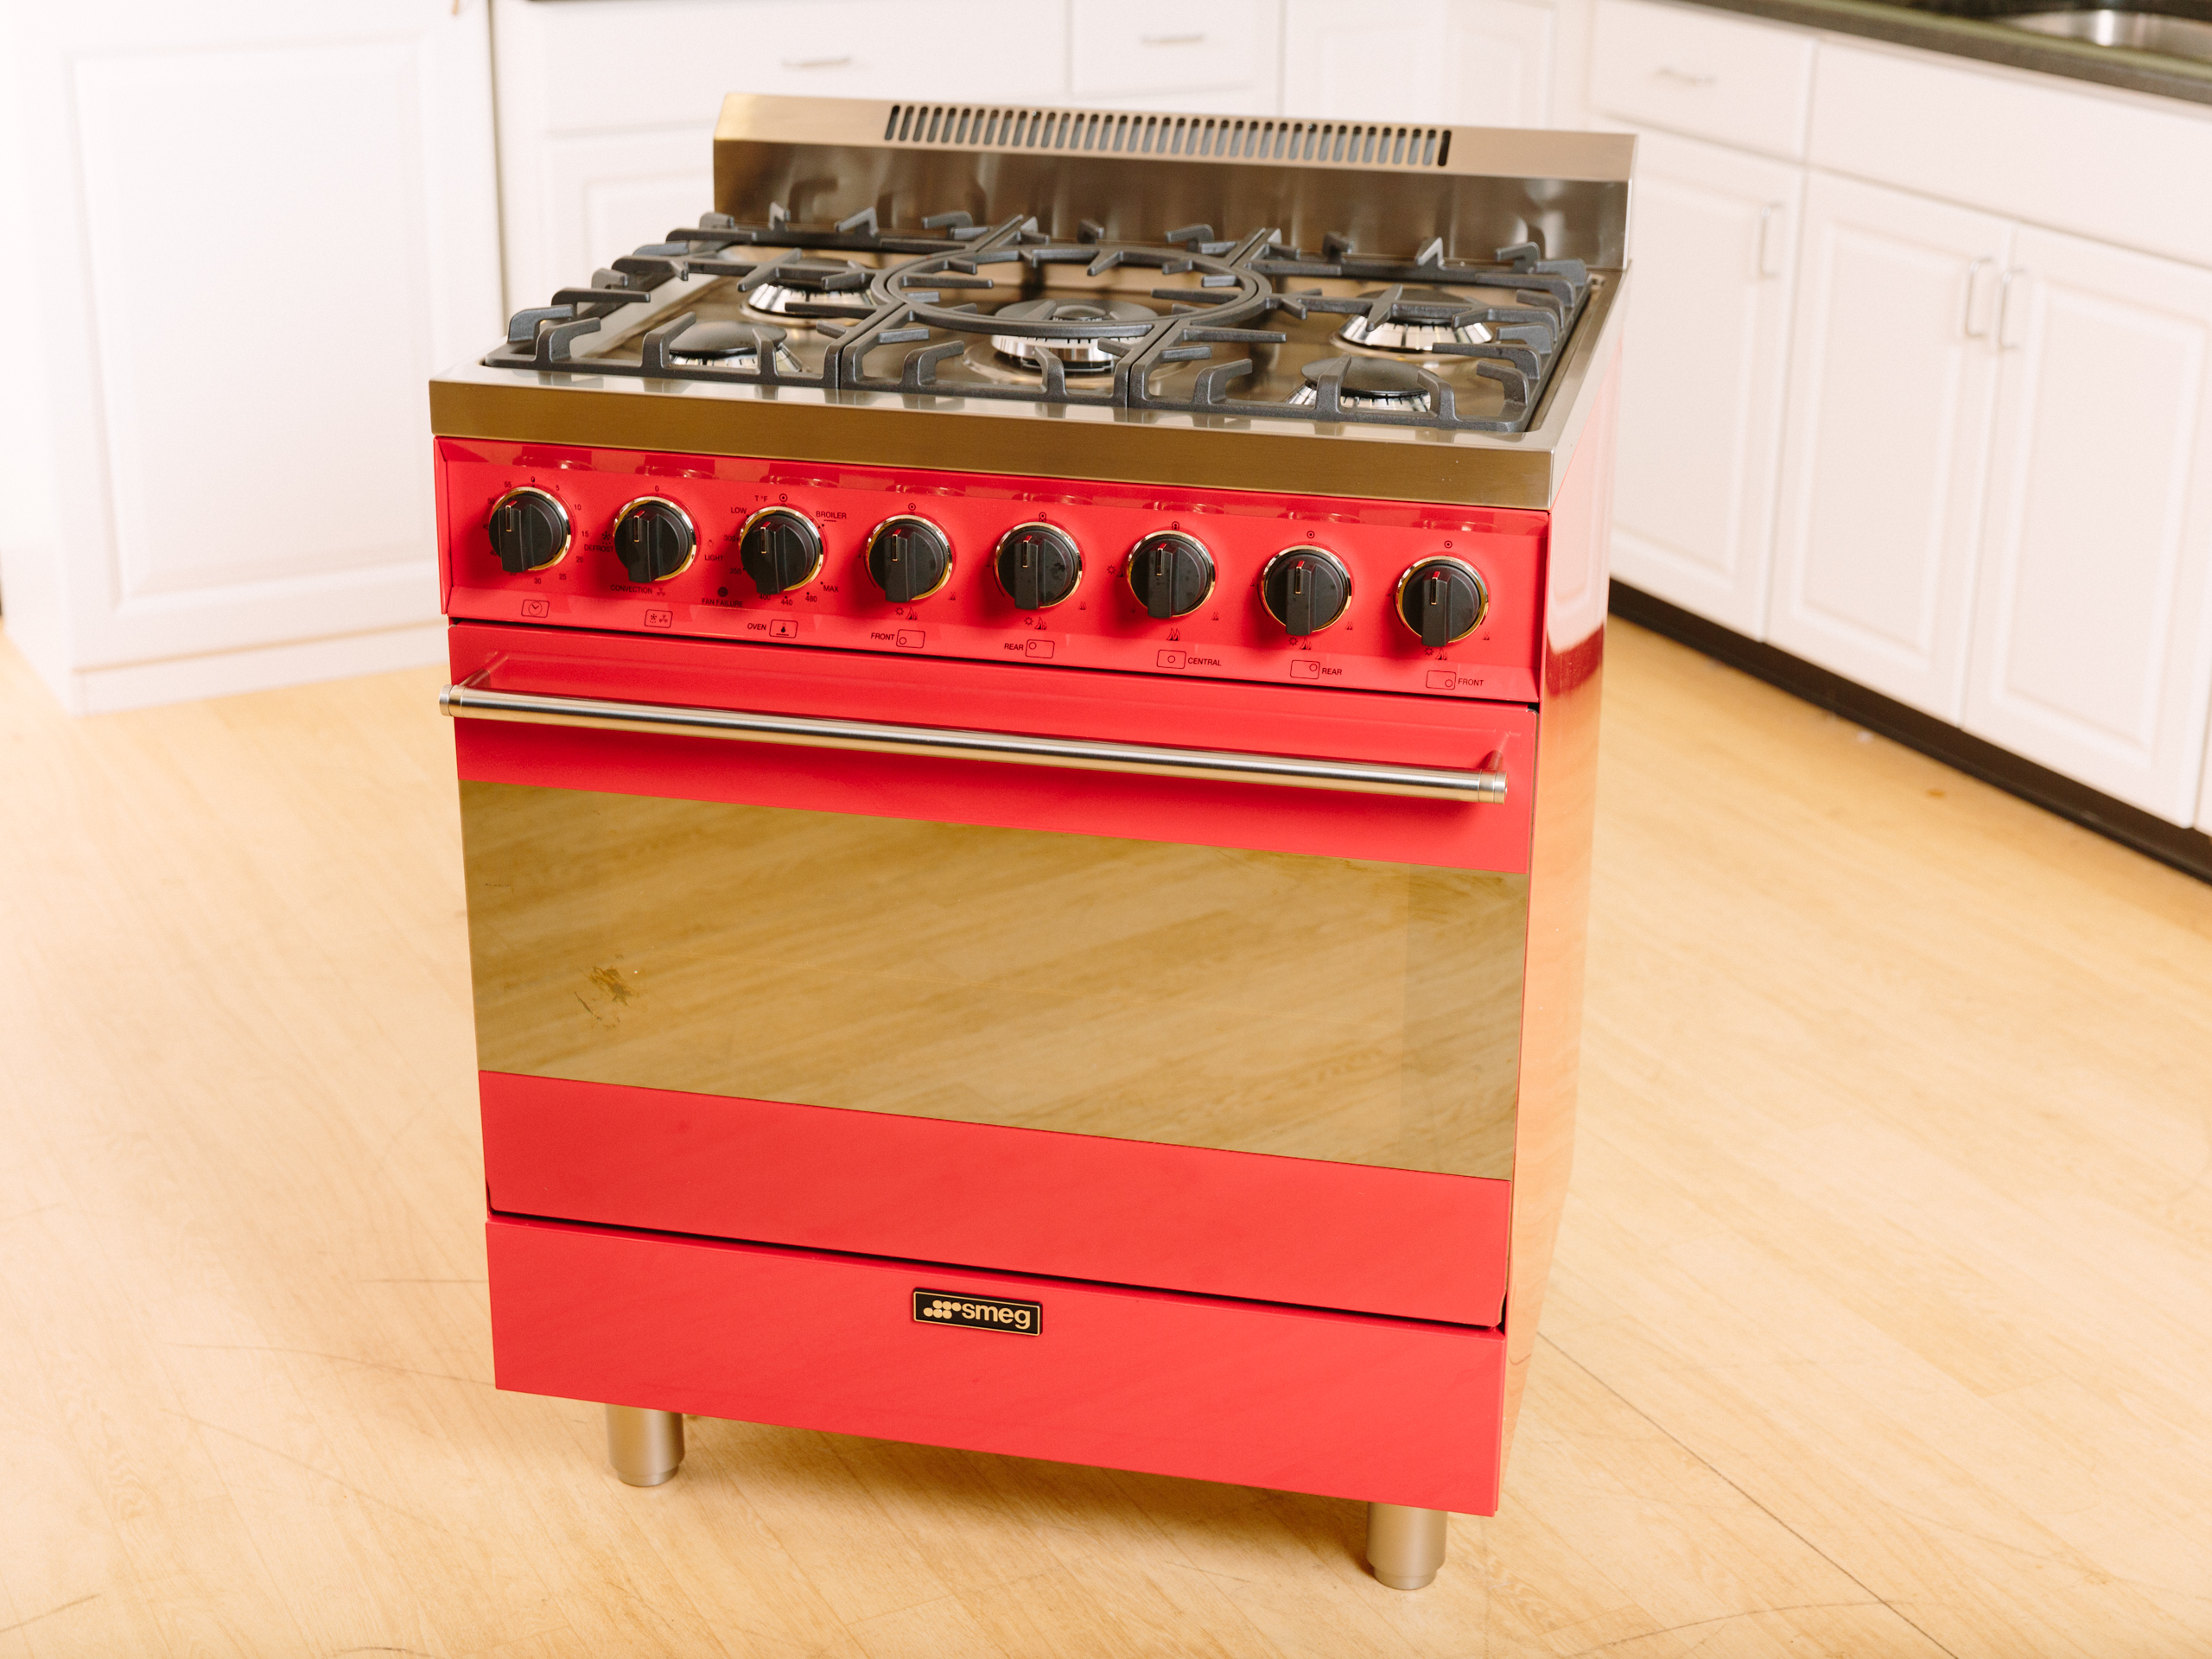 smeg-c30ggru-gas-oven-product-photos-1.jpg